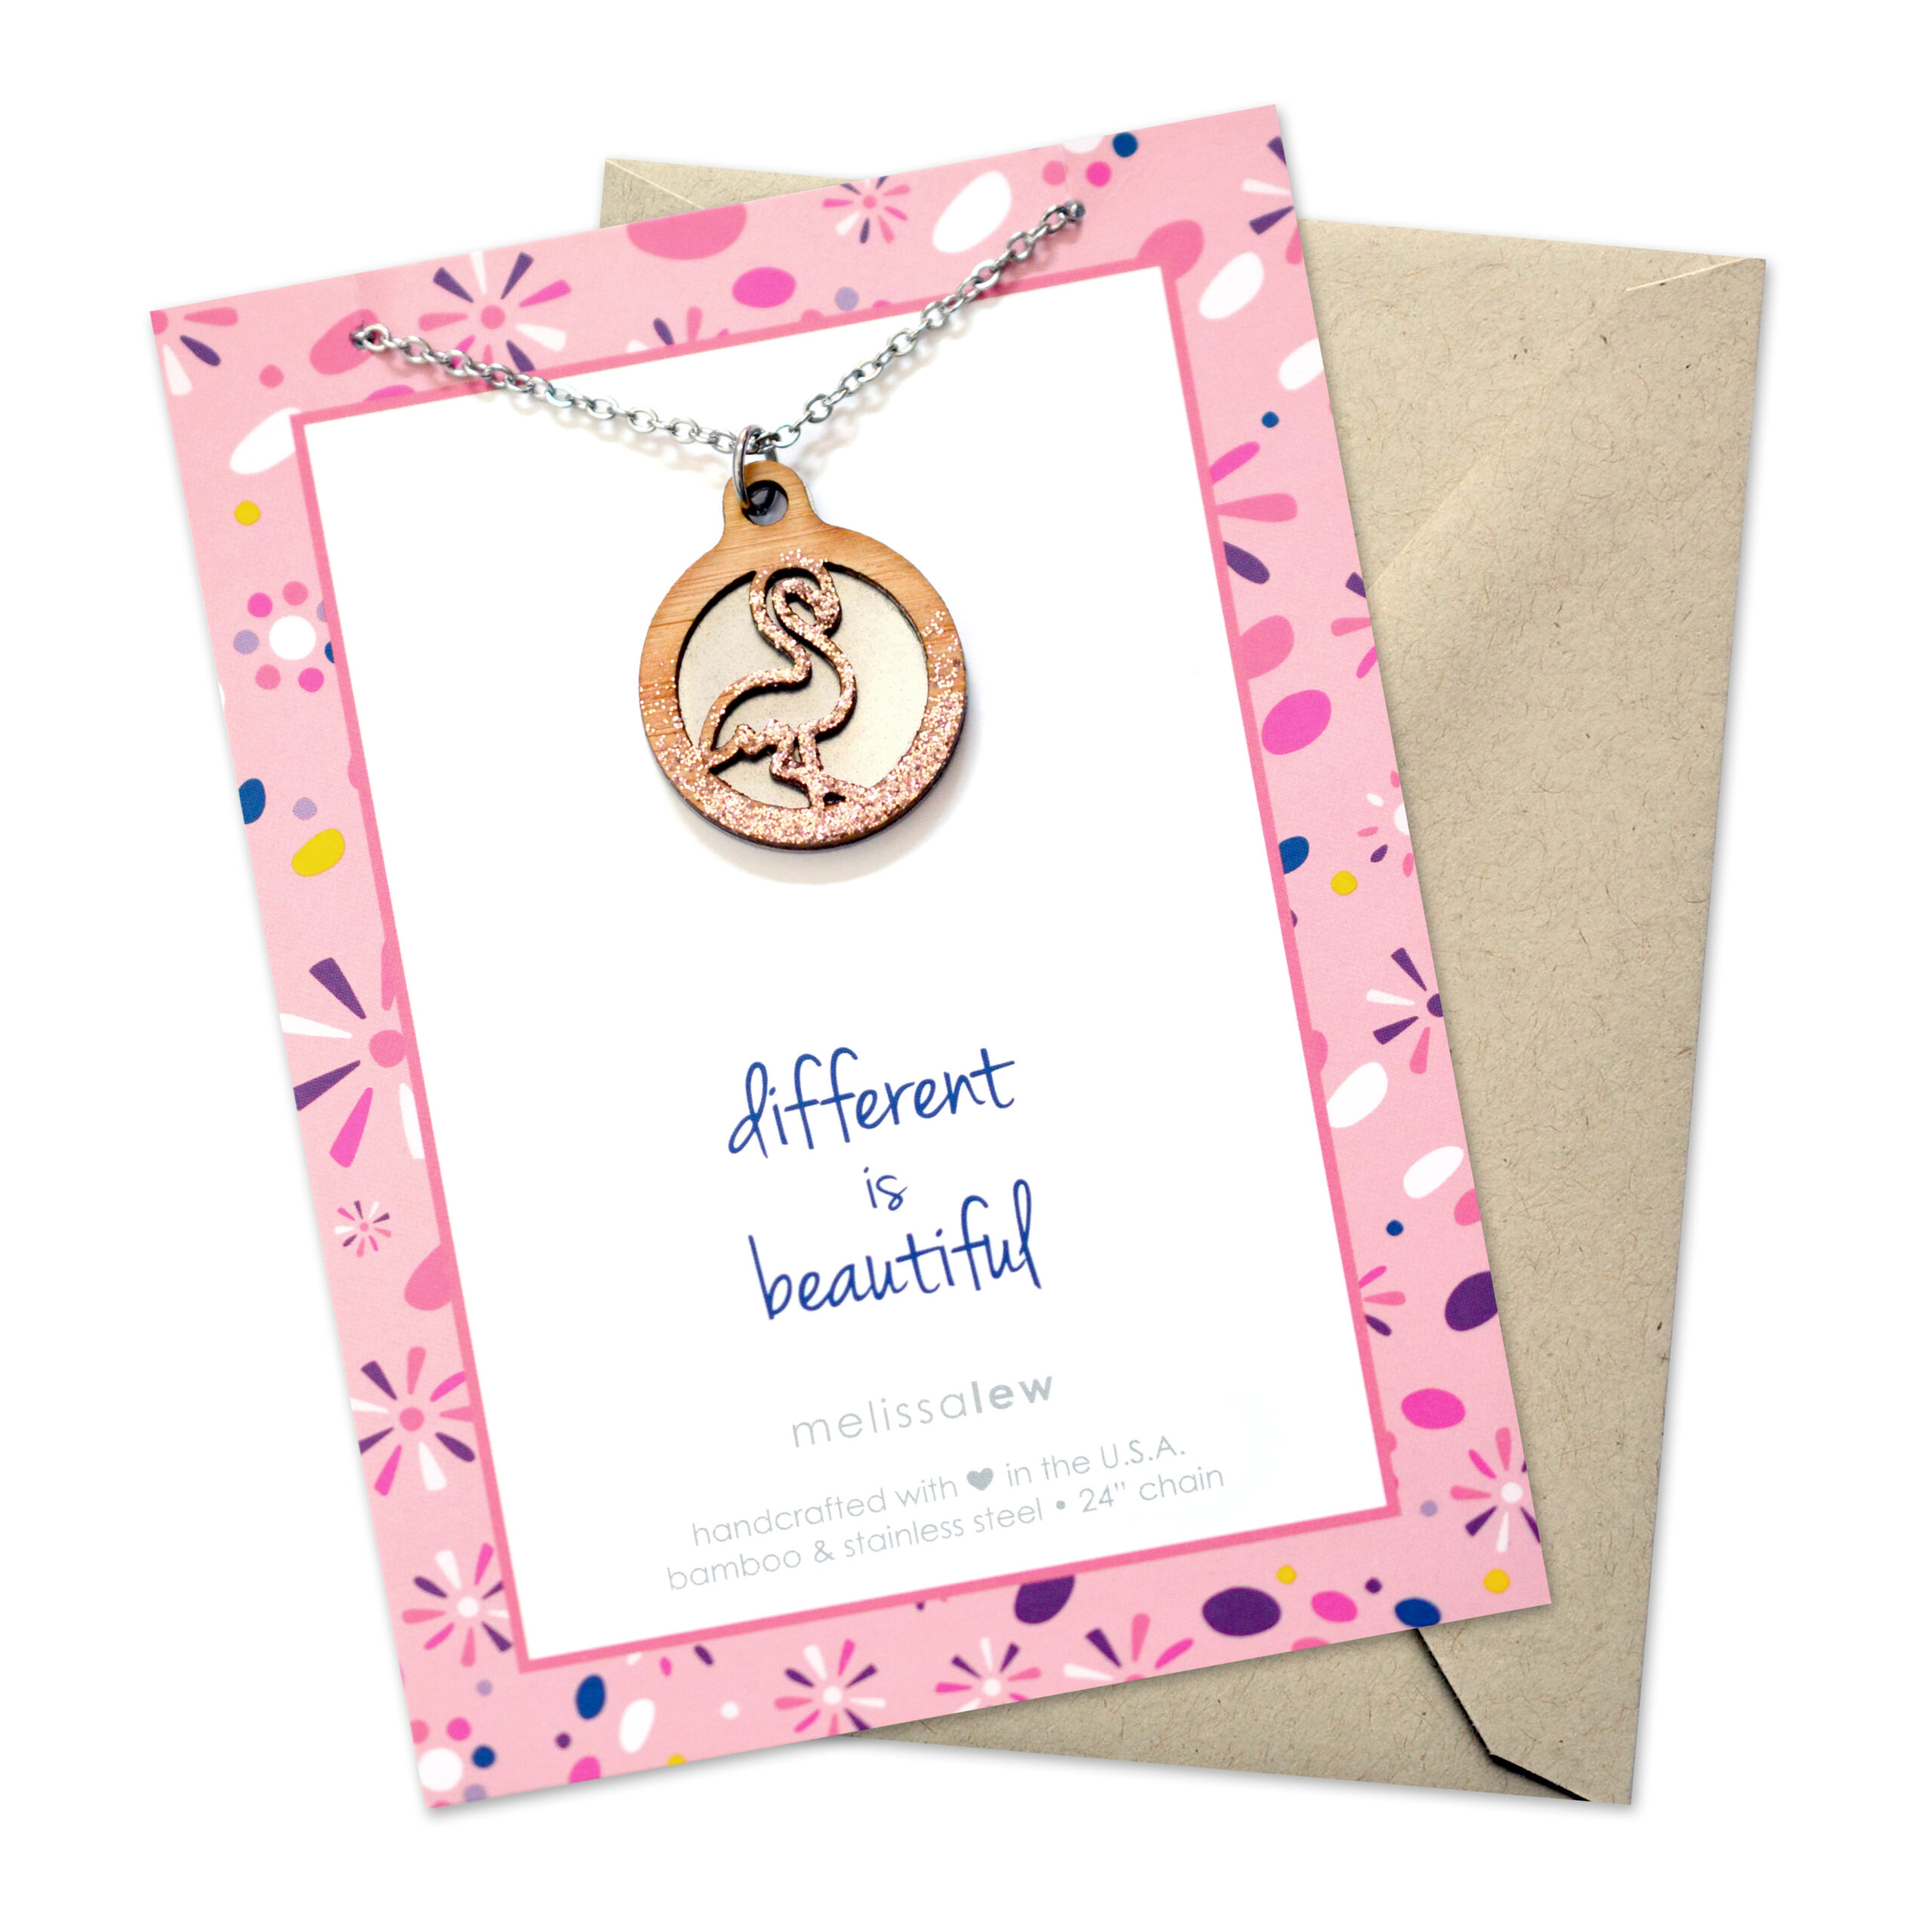 Rose gold glitter flamingo necklace made from bamboo and stainless steel